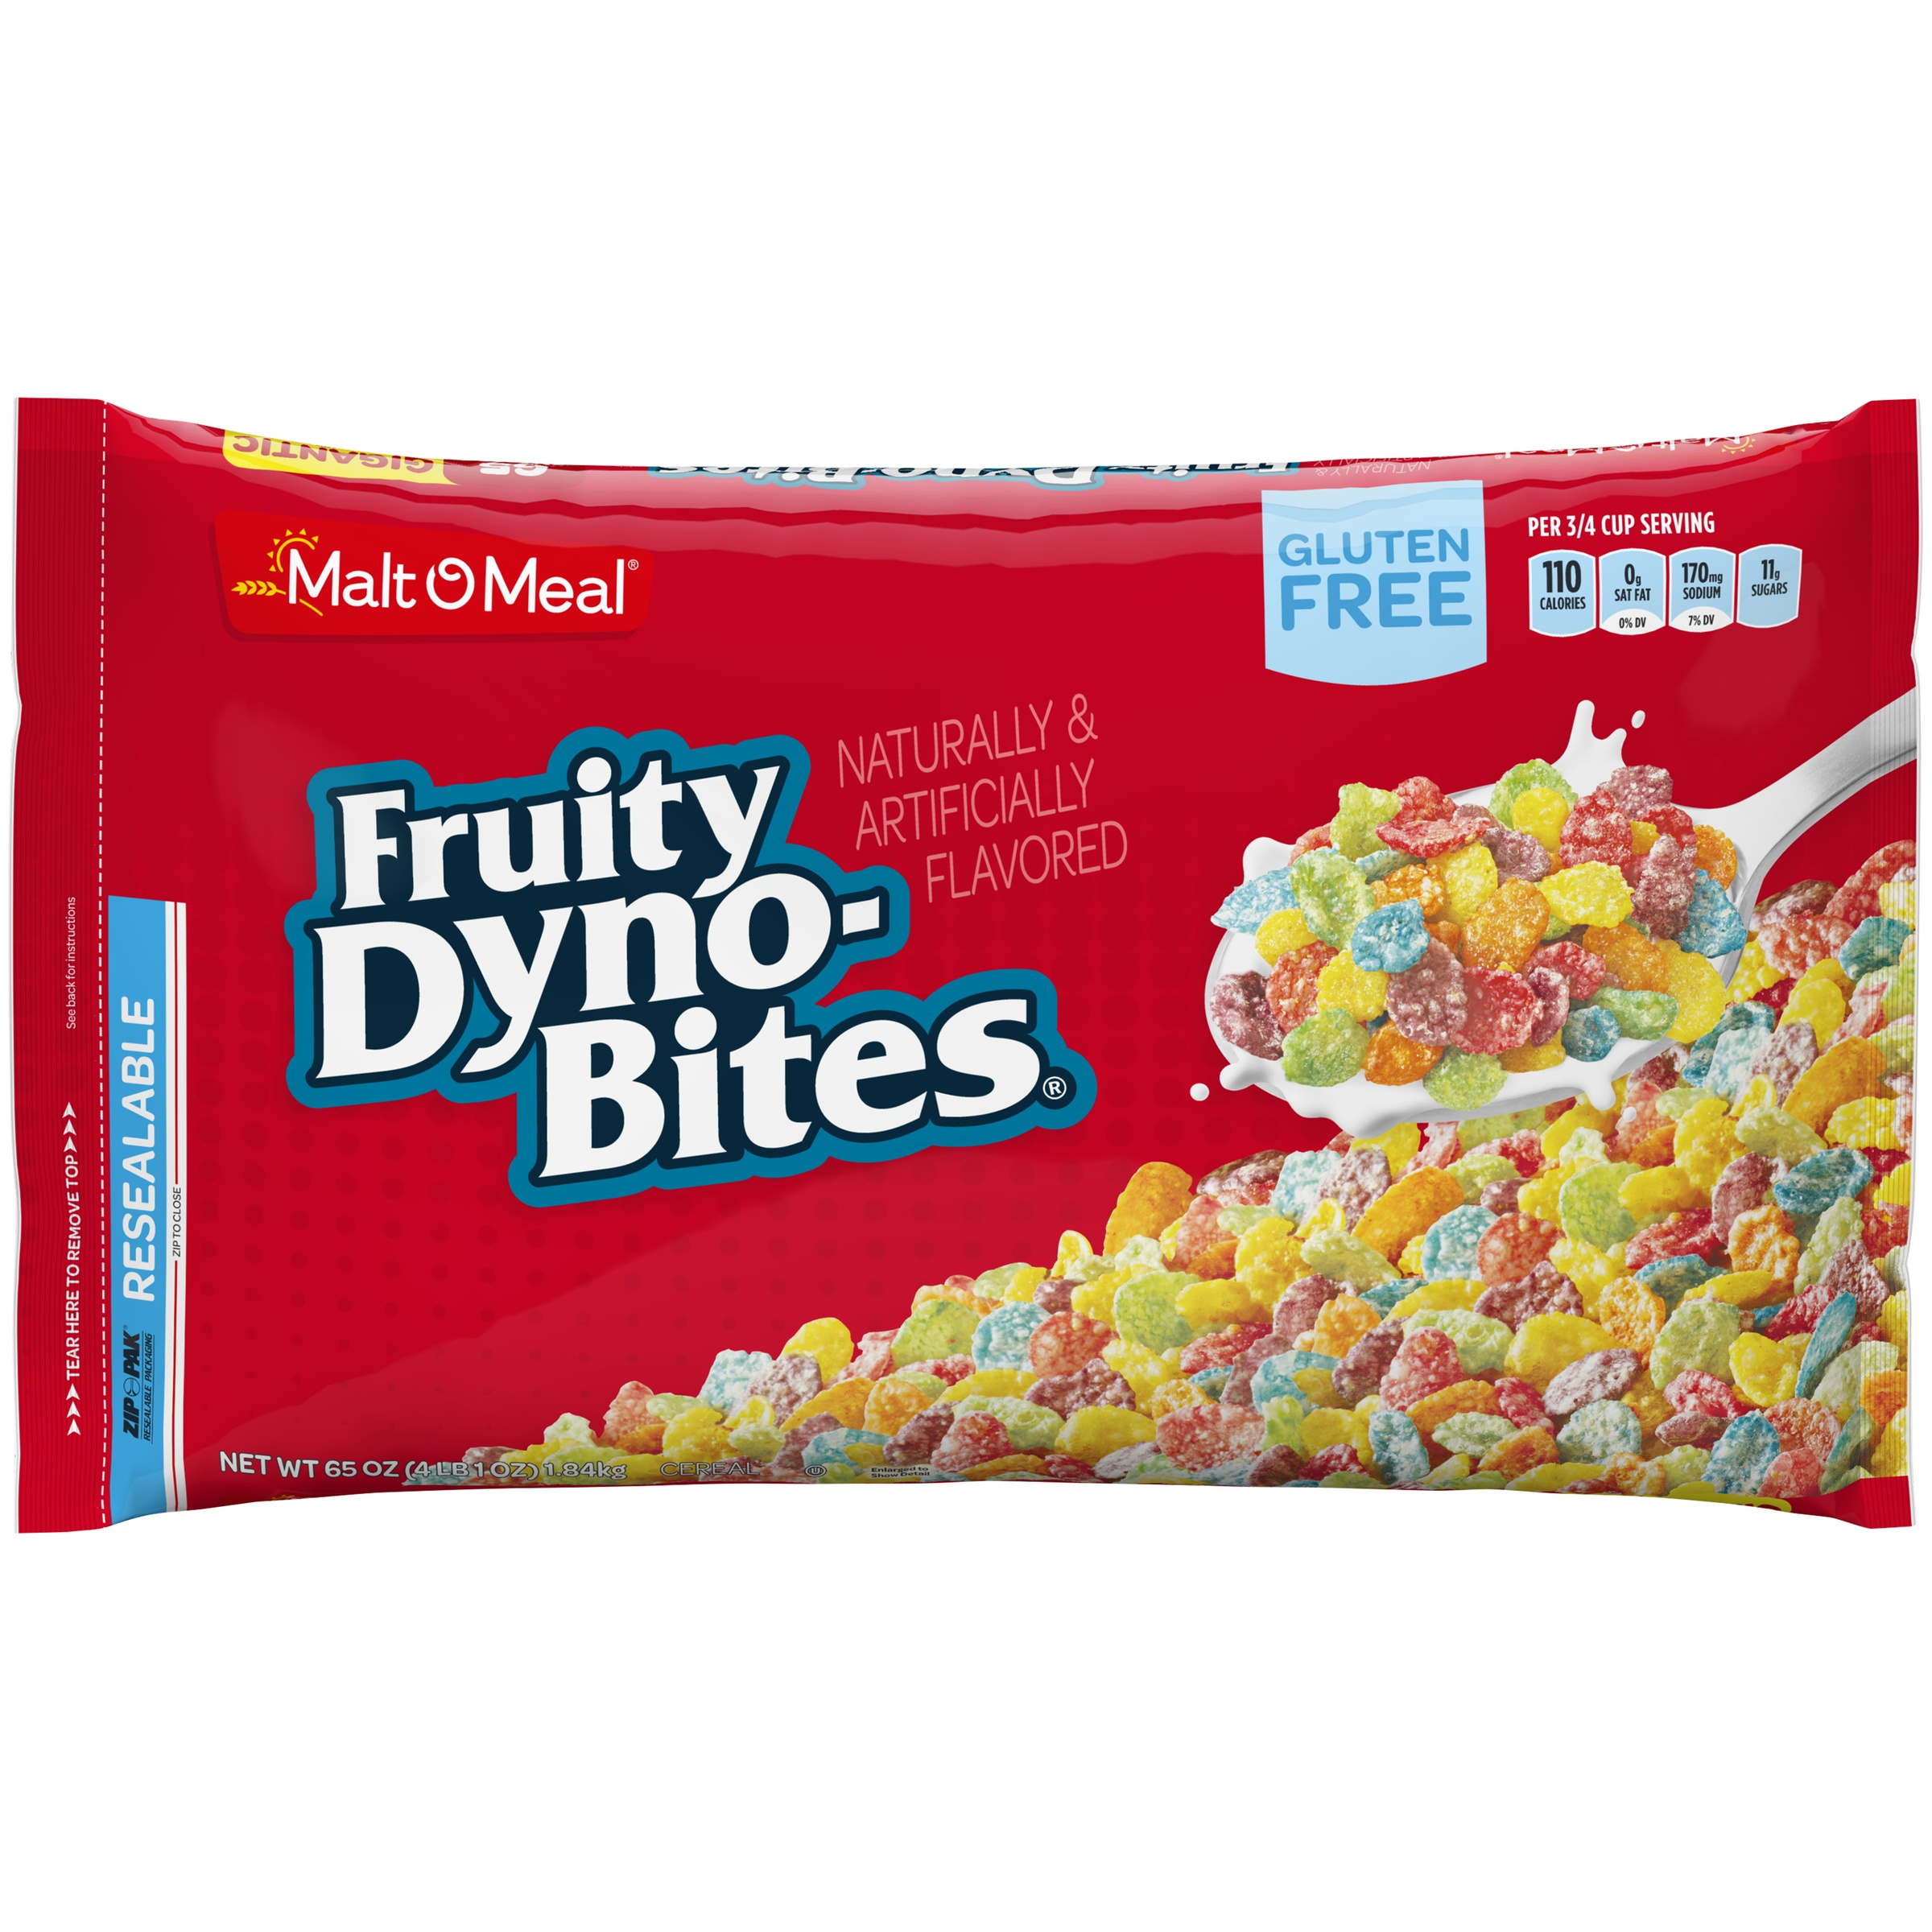 Malt-O-Meal Gluten Free Cereal, Fruity Dyno Bites, 65 Oz, Bag